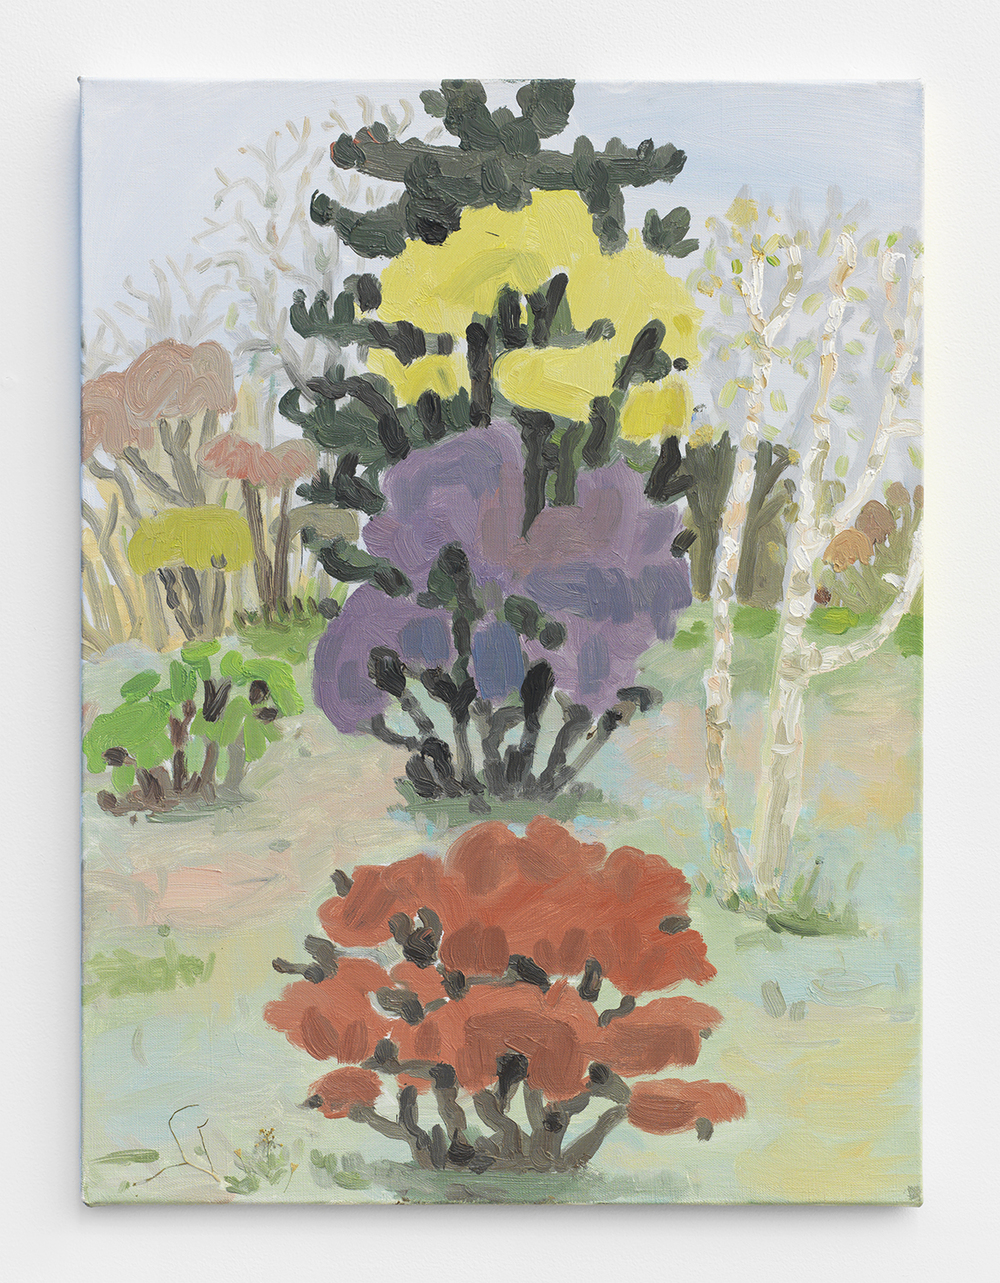 Daniel Heidkamp Slayer Of Delusion, 2014 Oil on canvas  24 x 18 inches